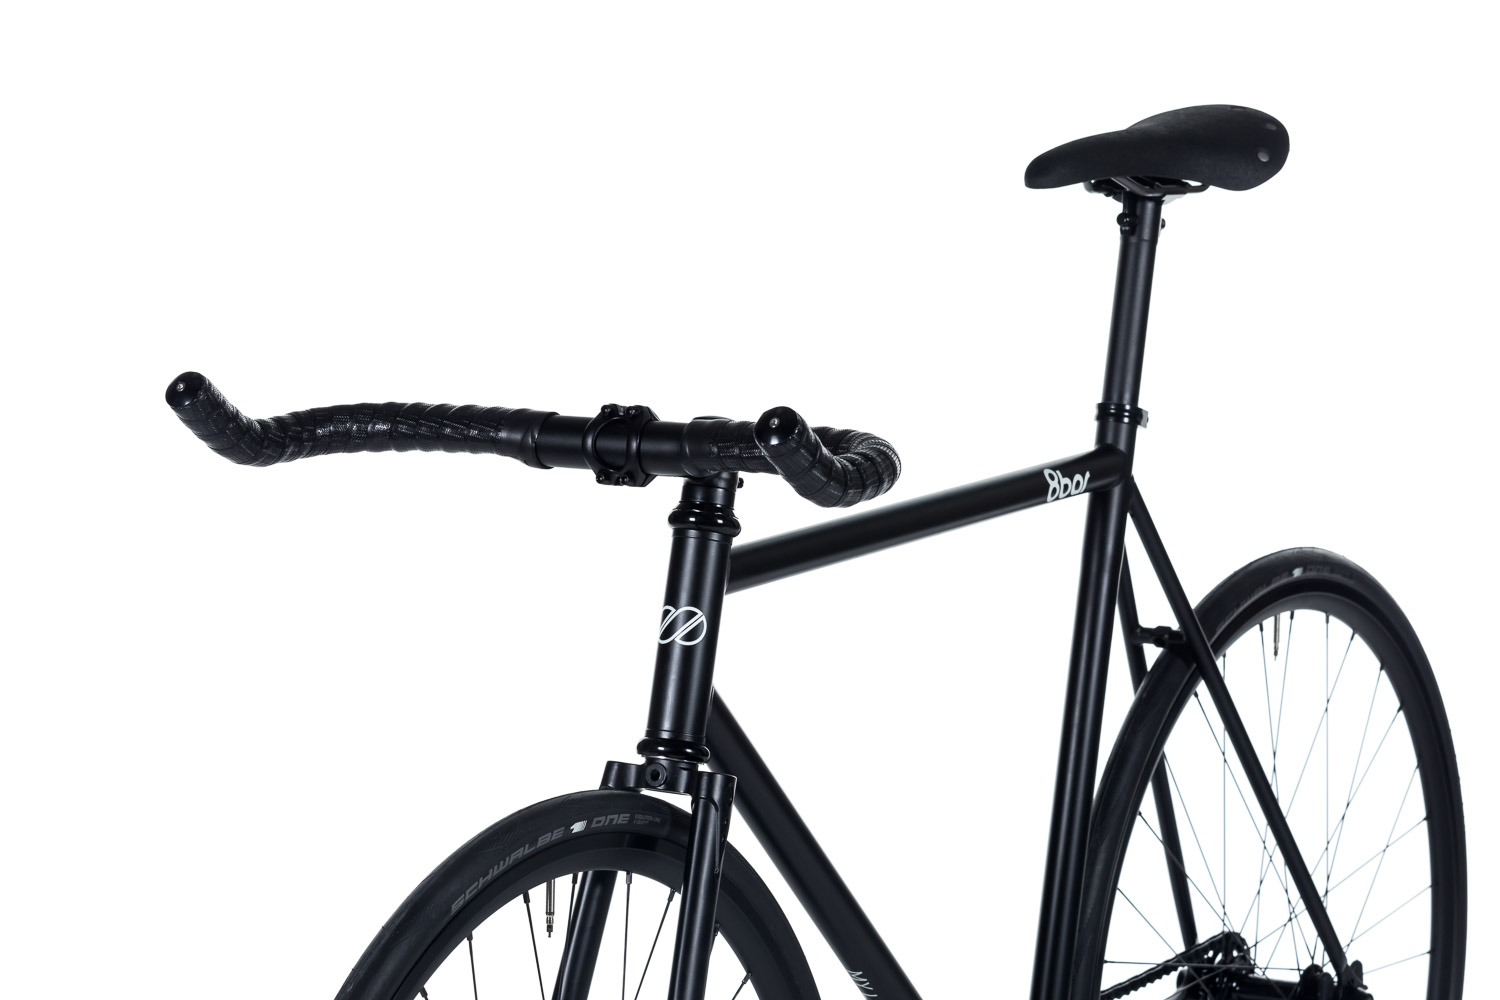 8bar-complete-bike-fhain-steel-pro-urban-bull-black-studio-fixed-gear-fixie-lr-2